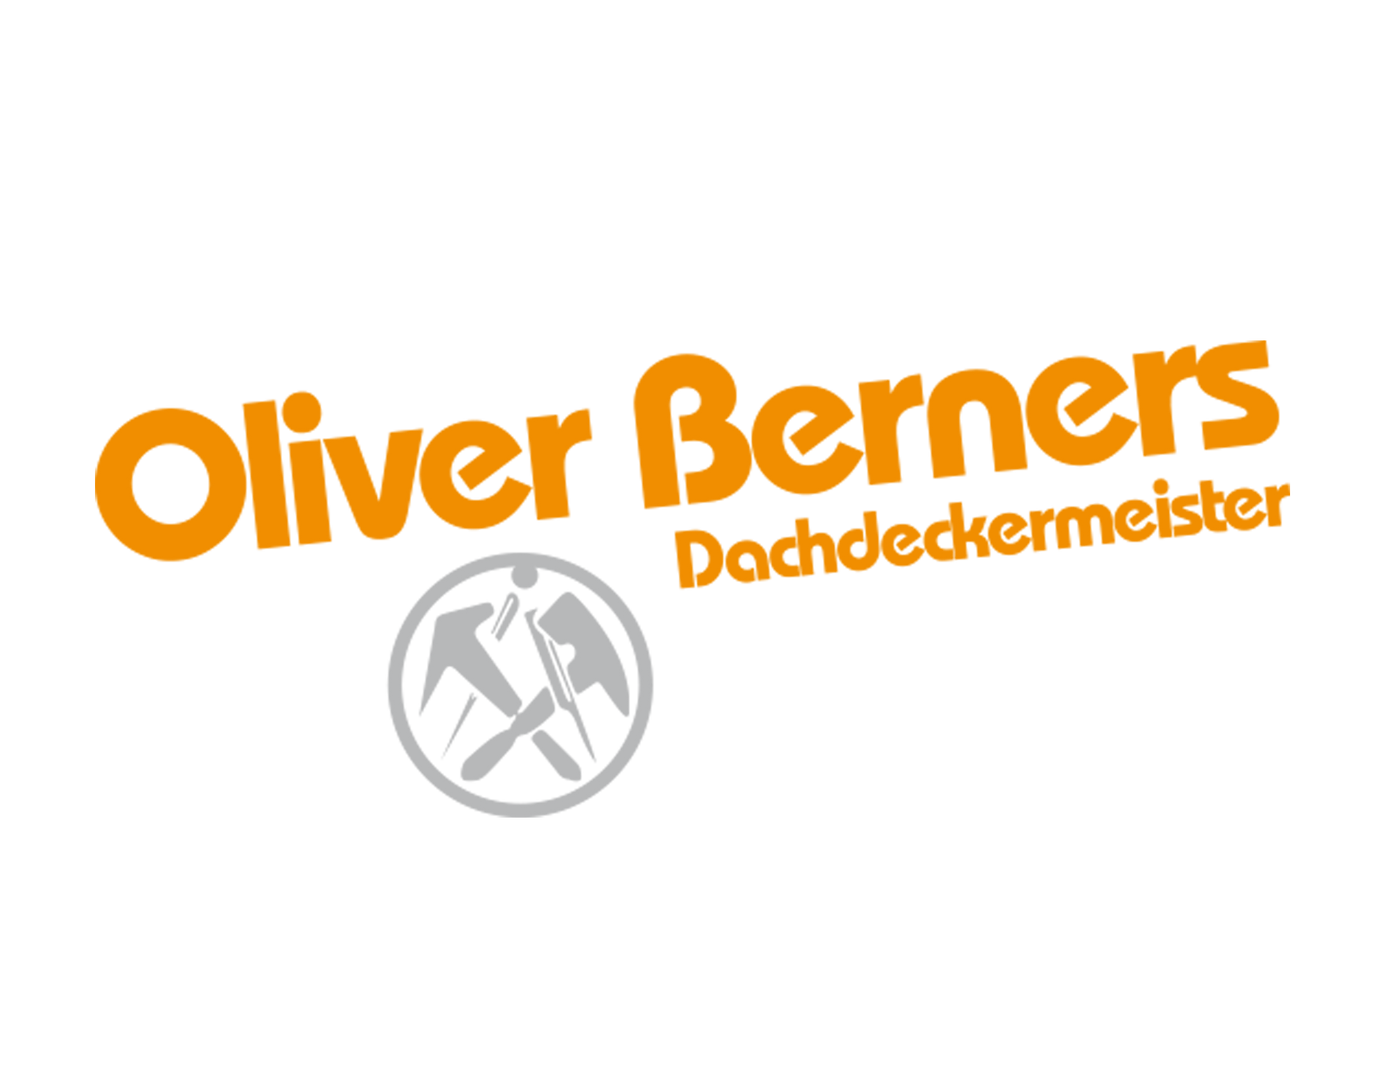 Logo_Oliver_Berners_Bedachung.png